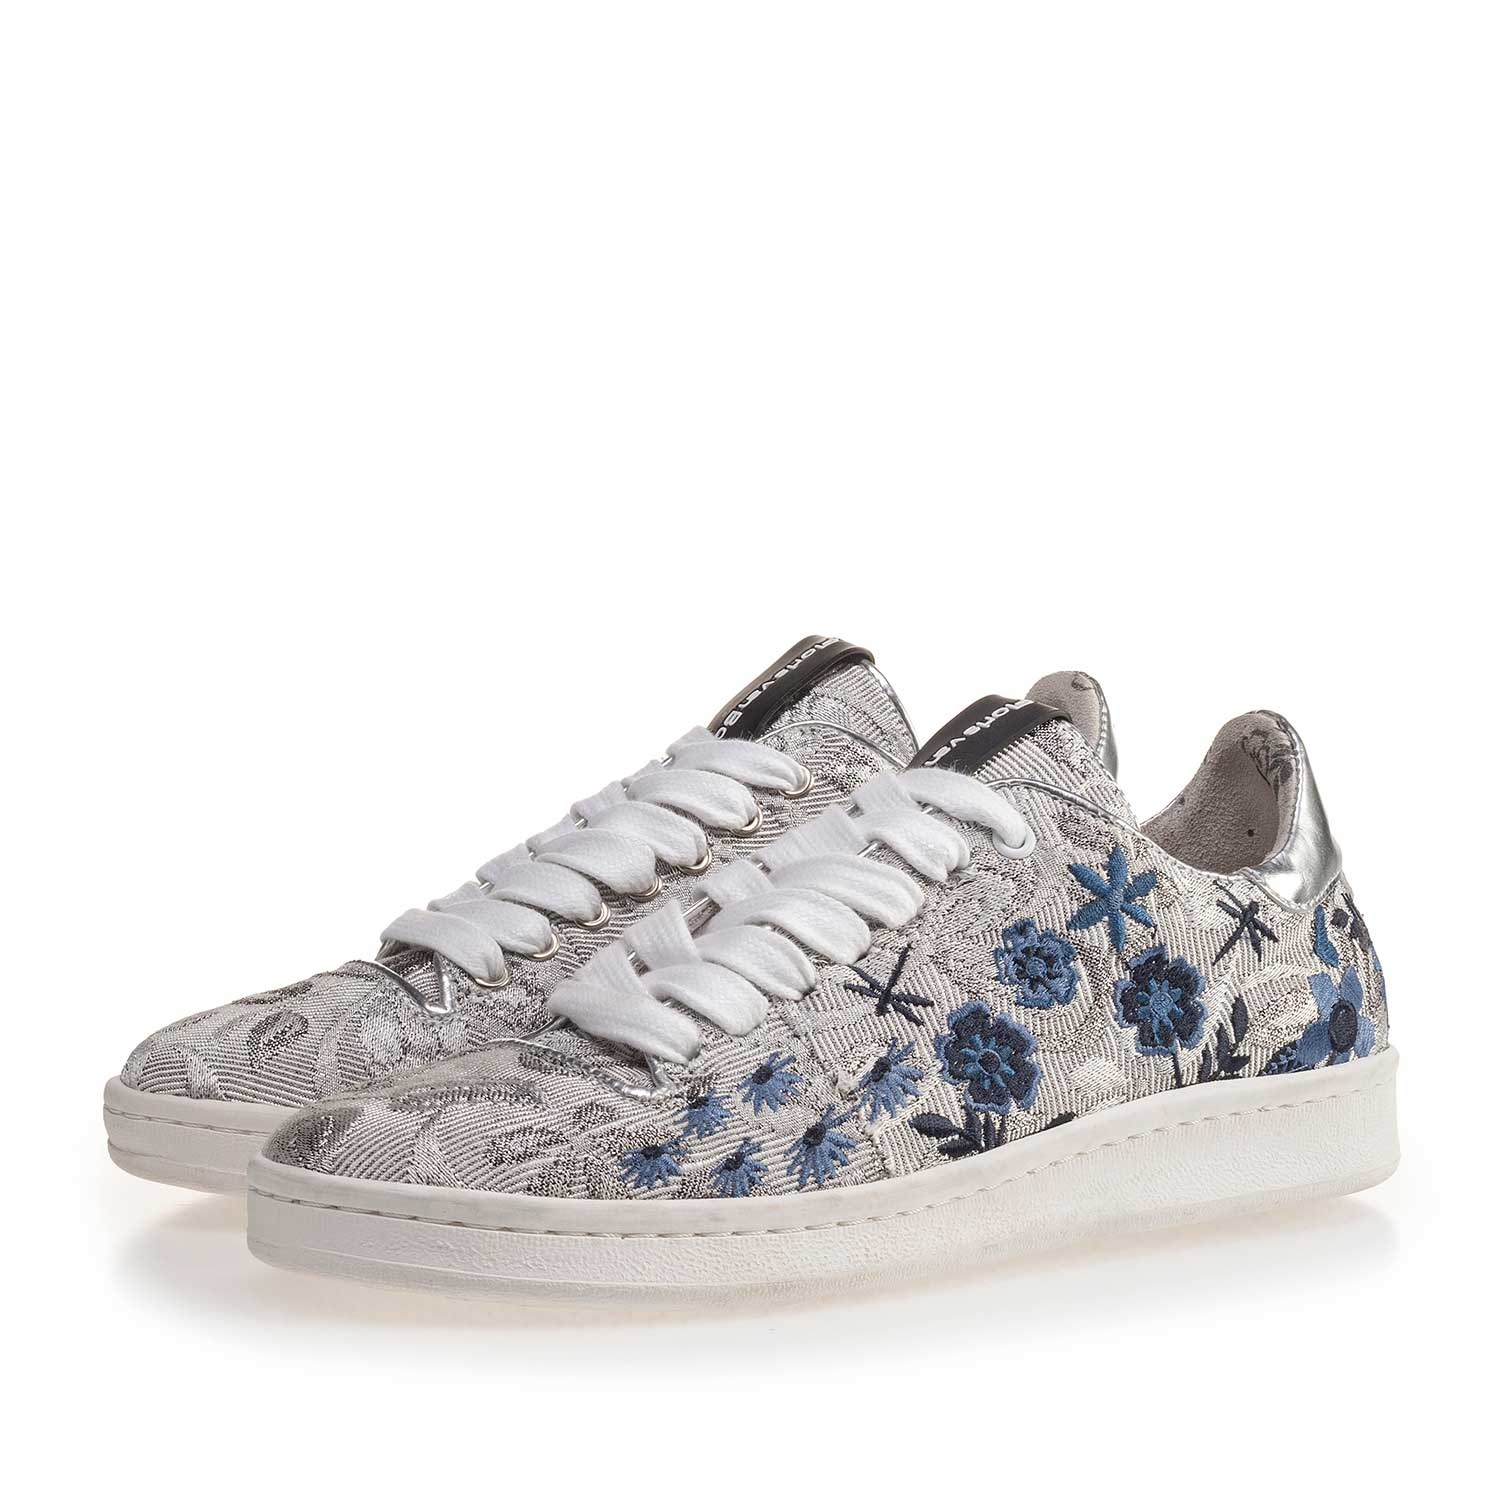 85235/03 - Silver-coloured sneaker with floral embroidery stitching